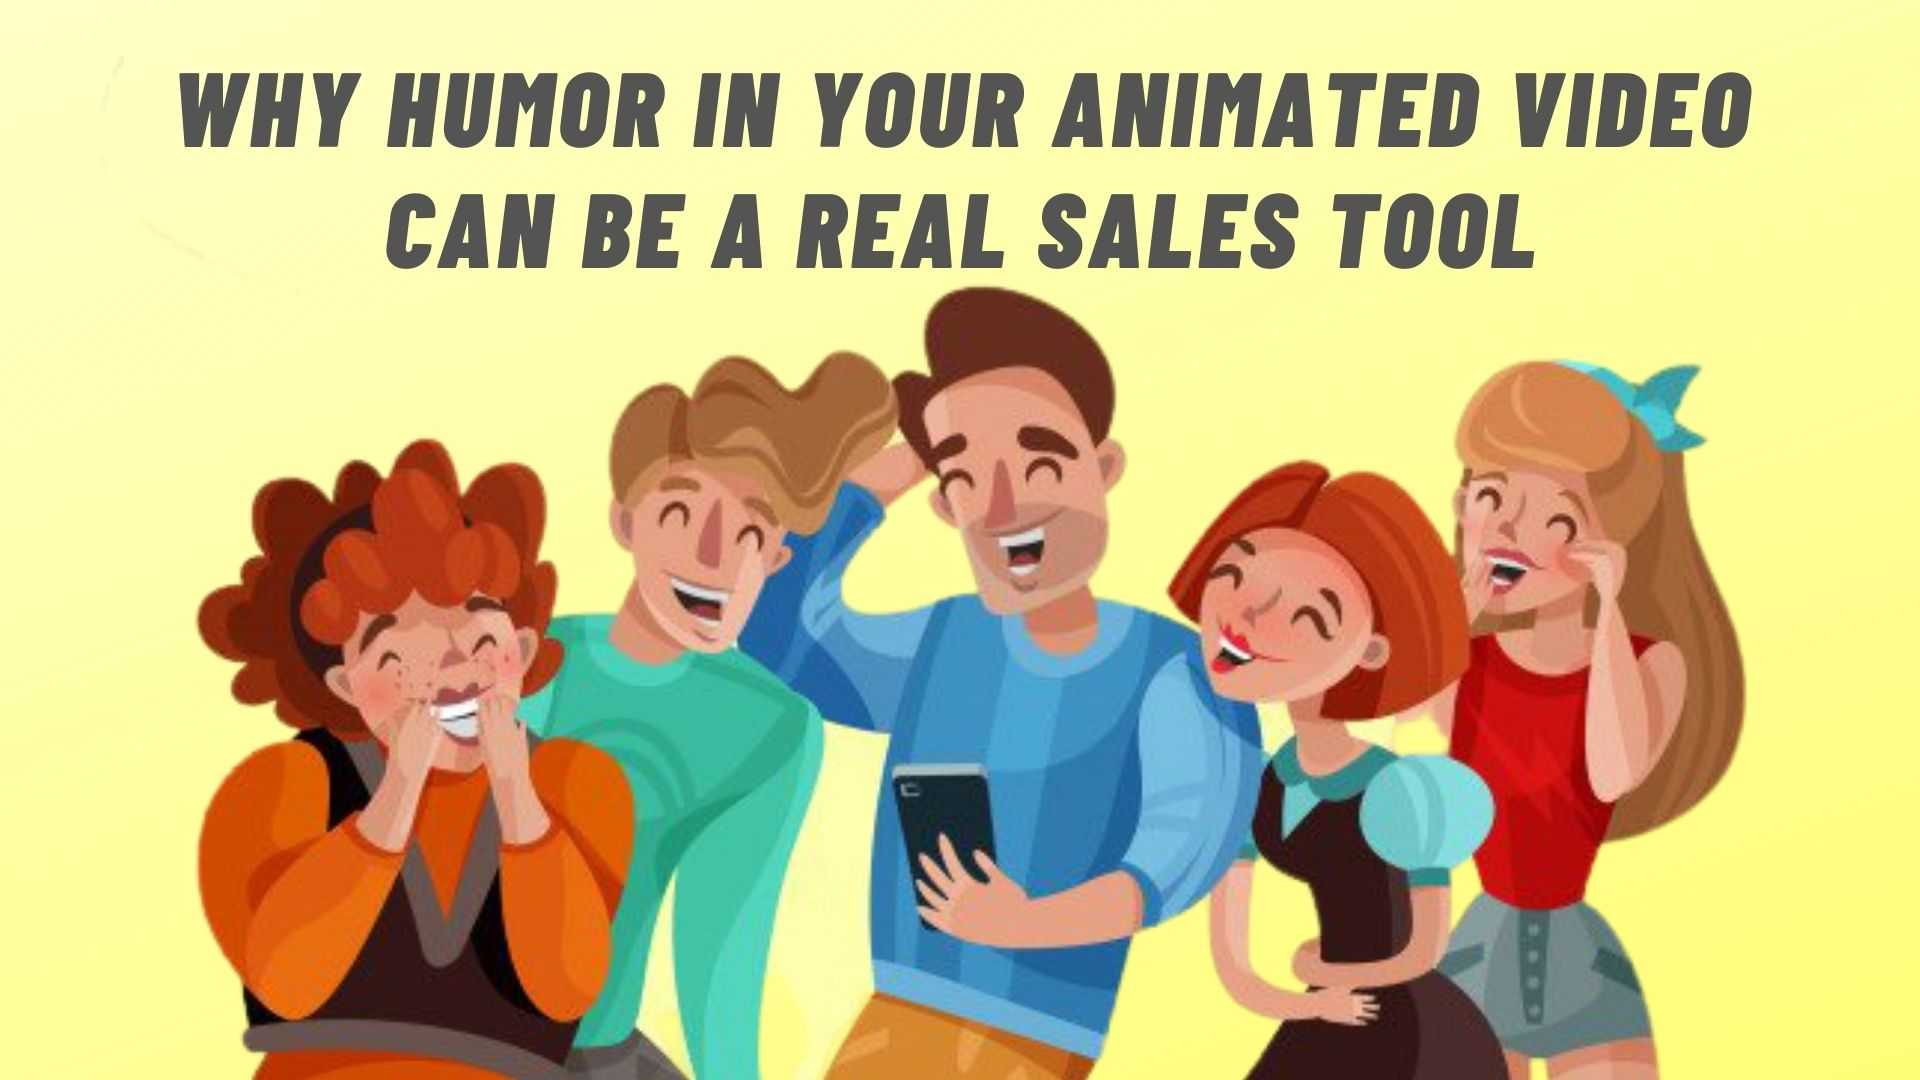 Watching funny videos, people laughing - animated illustration